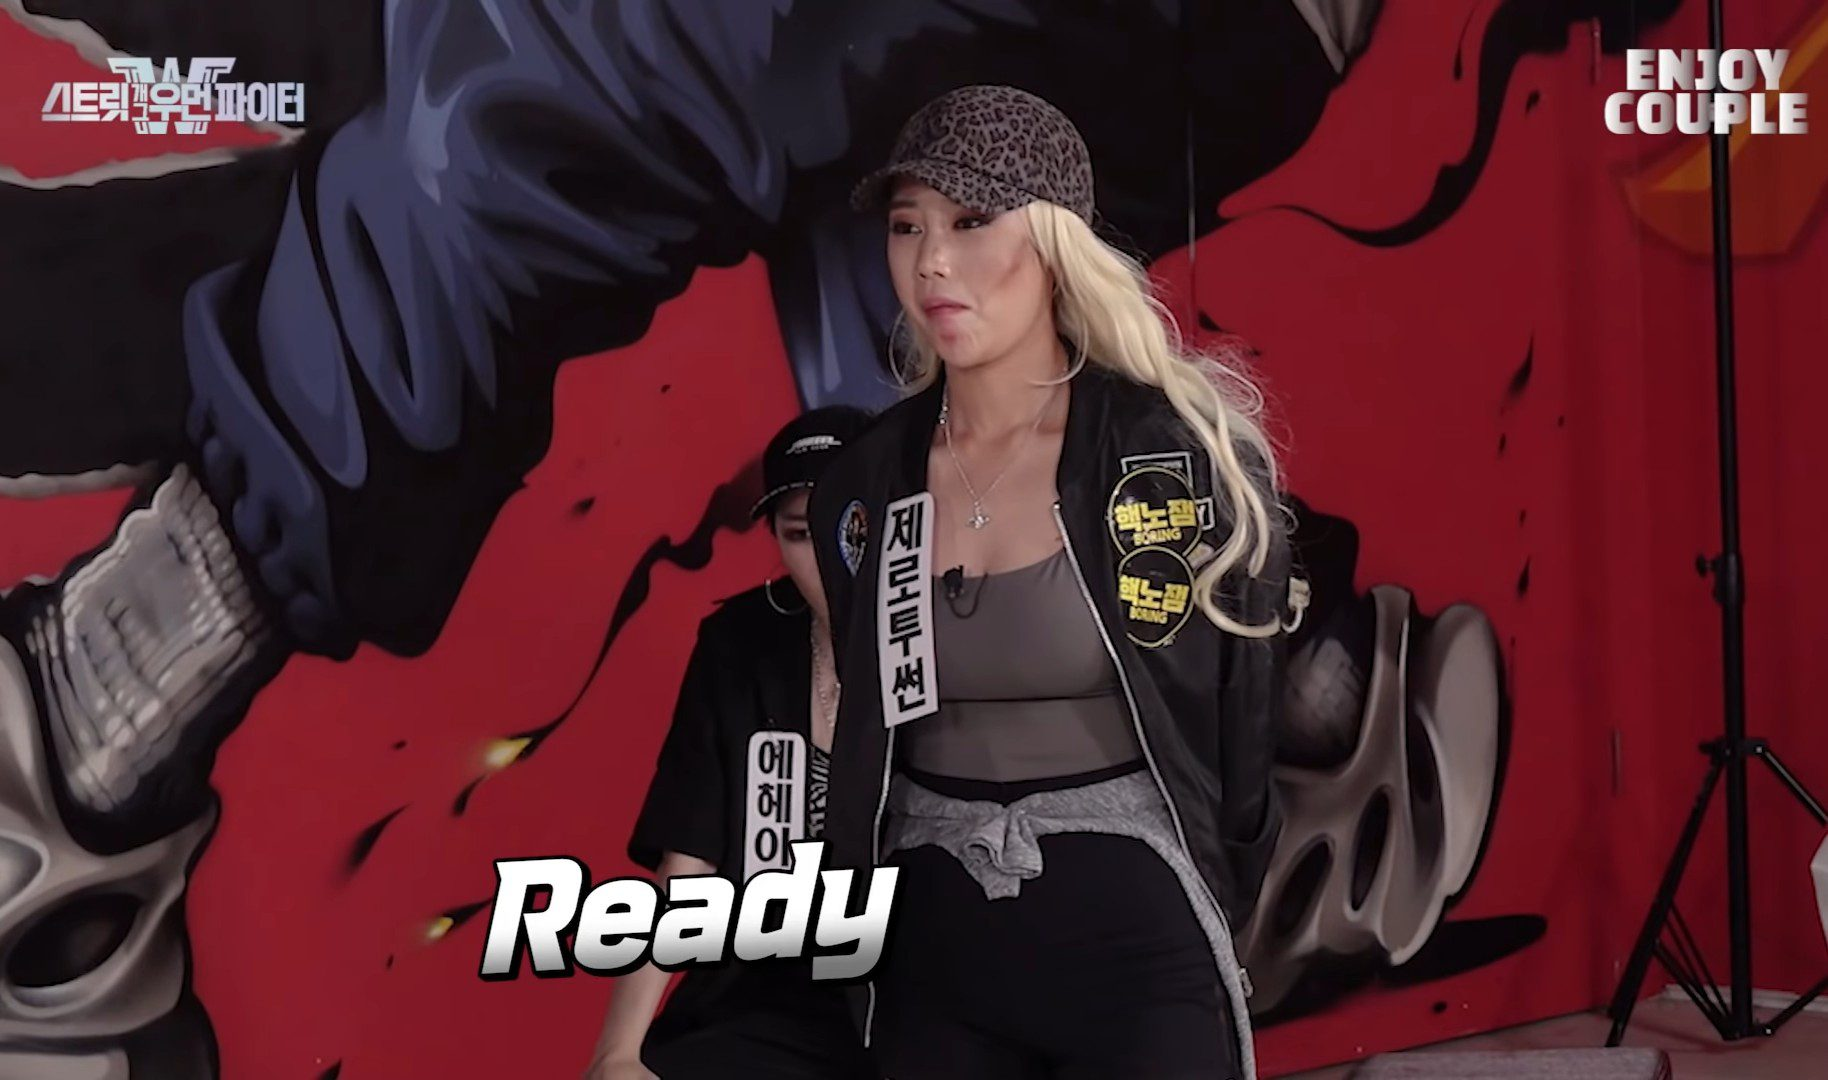 Street Gag Woman Fighter Episode 5 release date